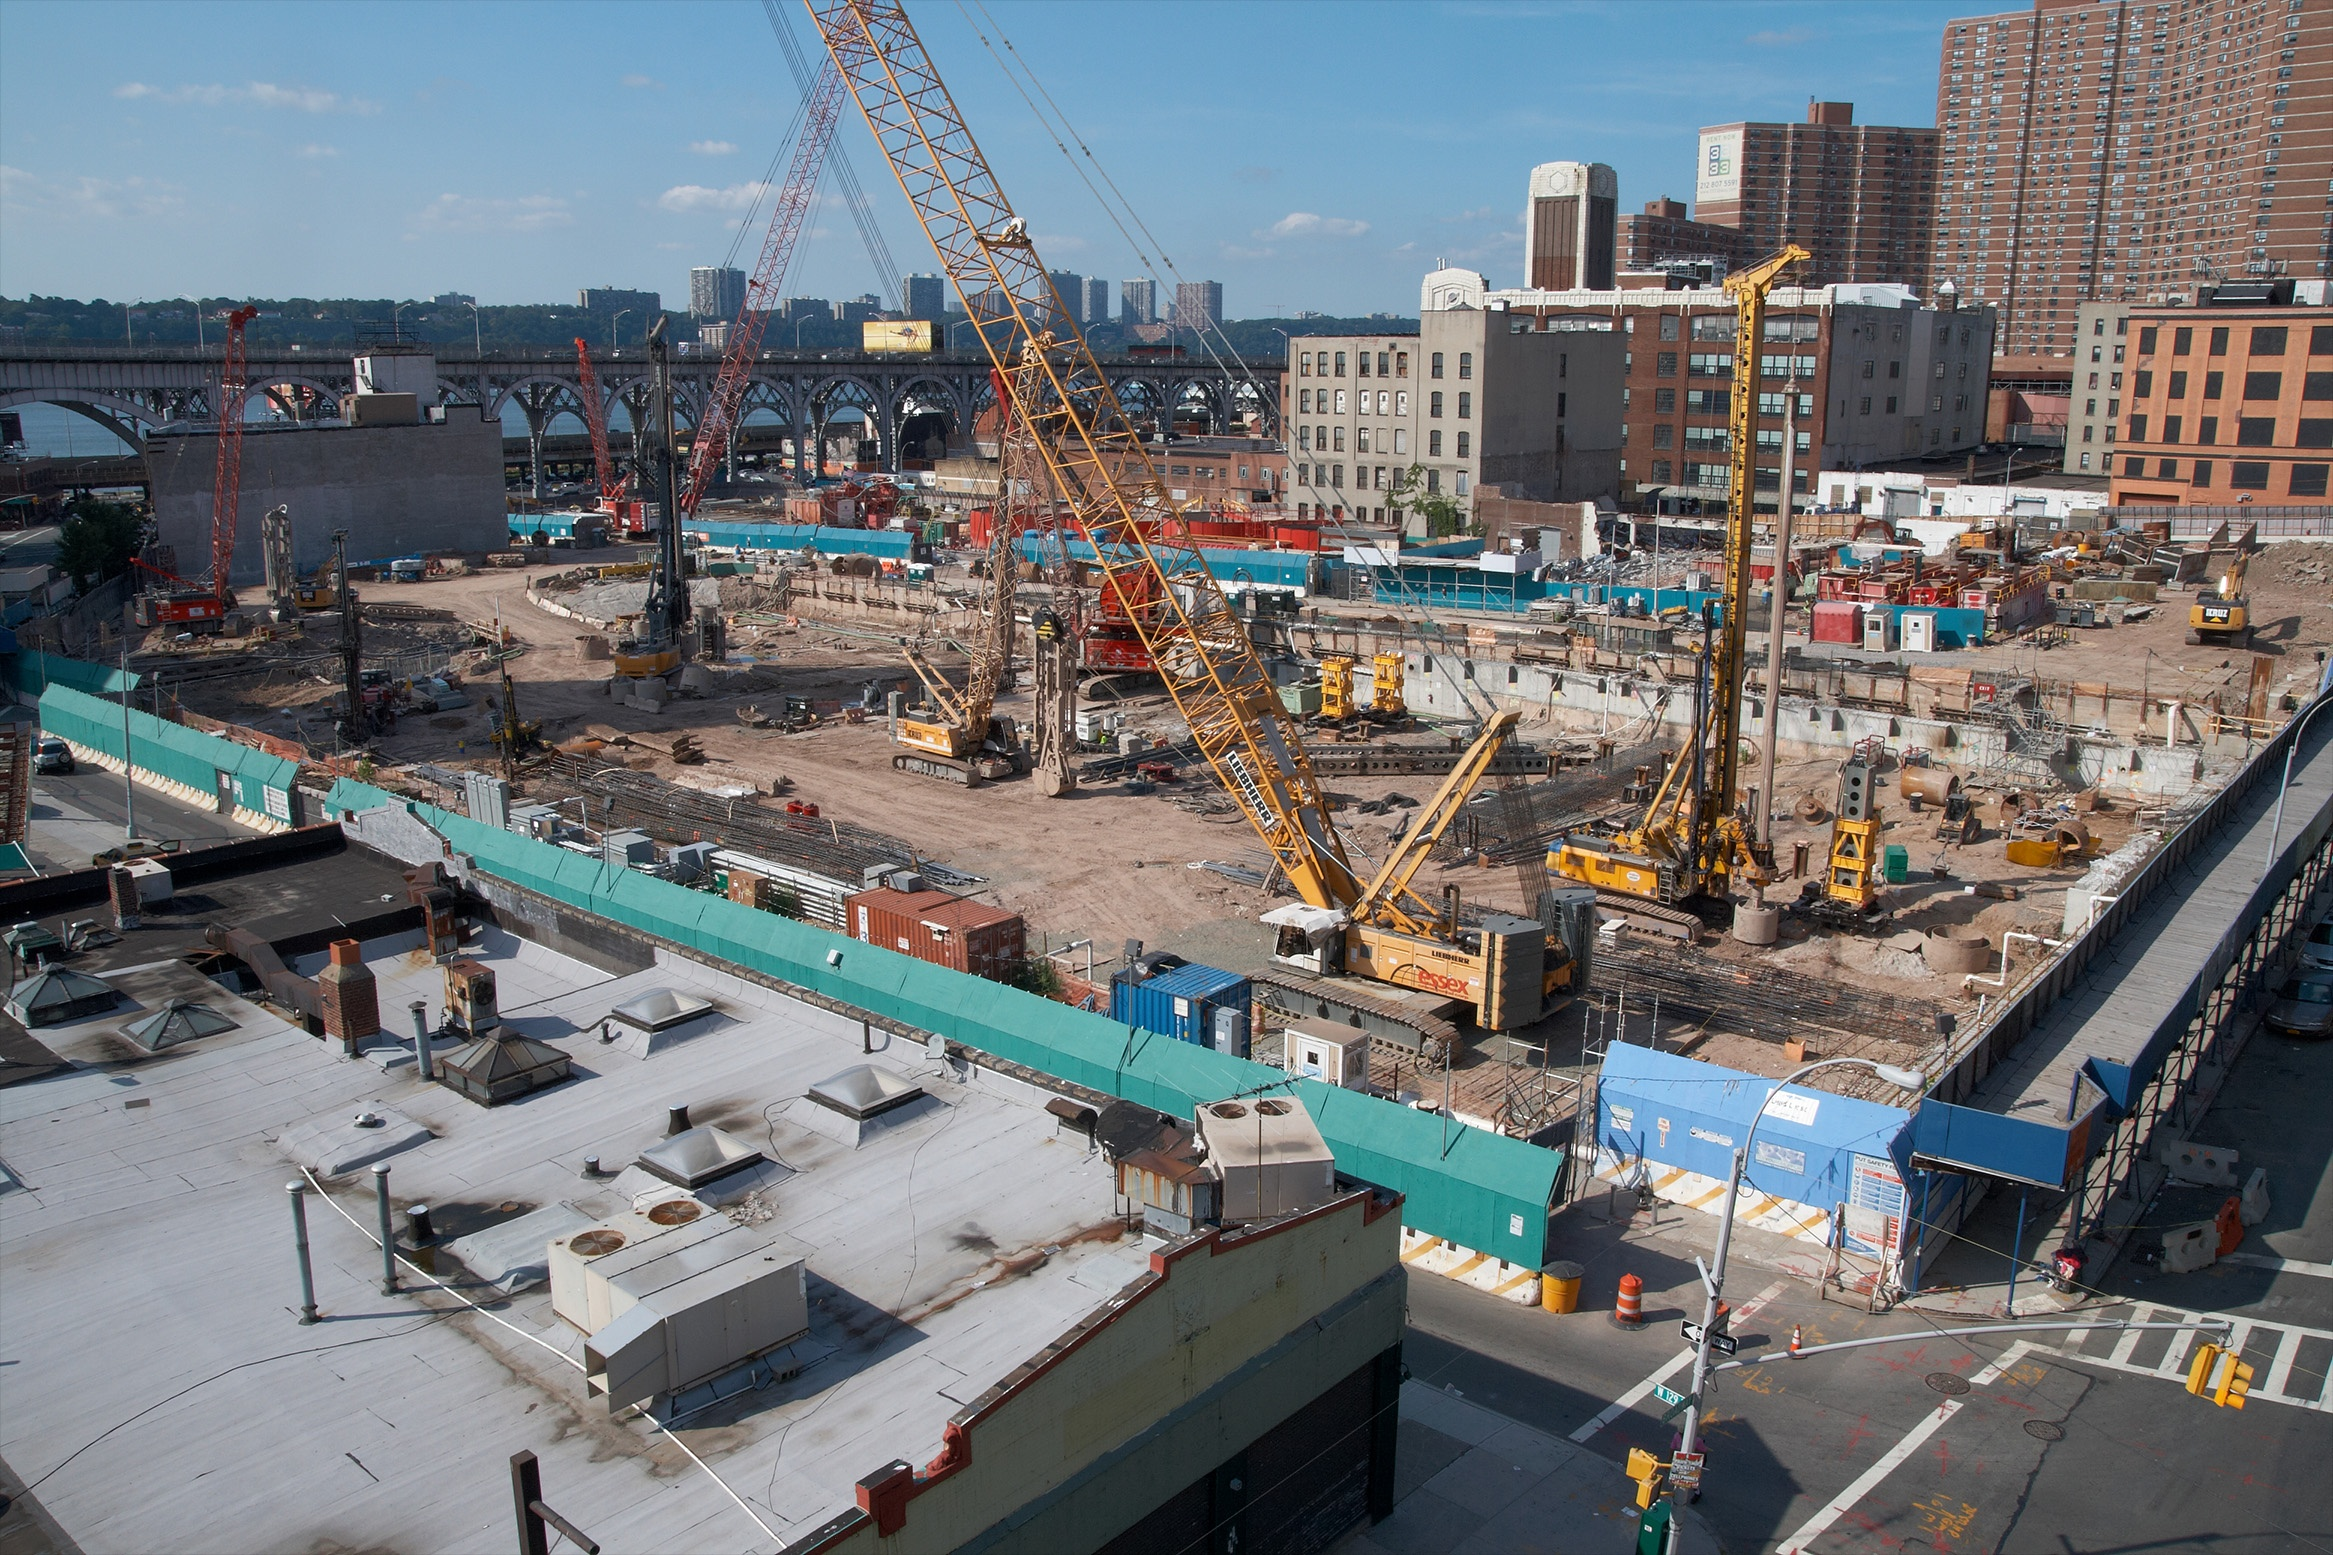 Construction_site_NW_of_the_Broadway_and_W_129th_St_intersection,_Manhattan copy